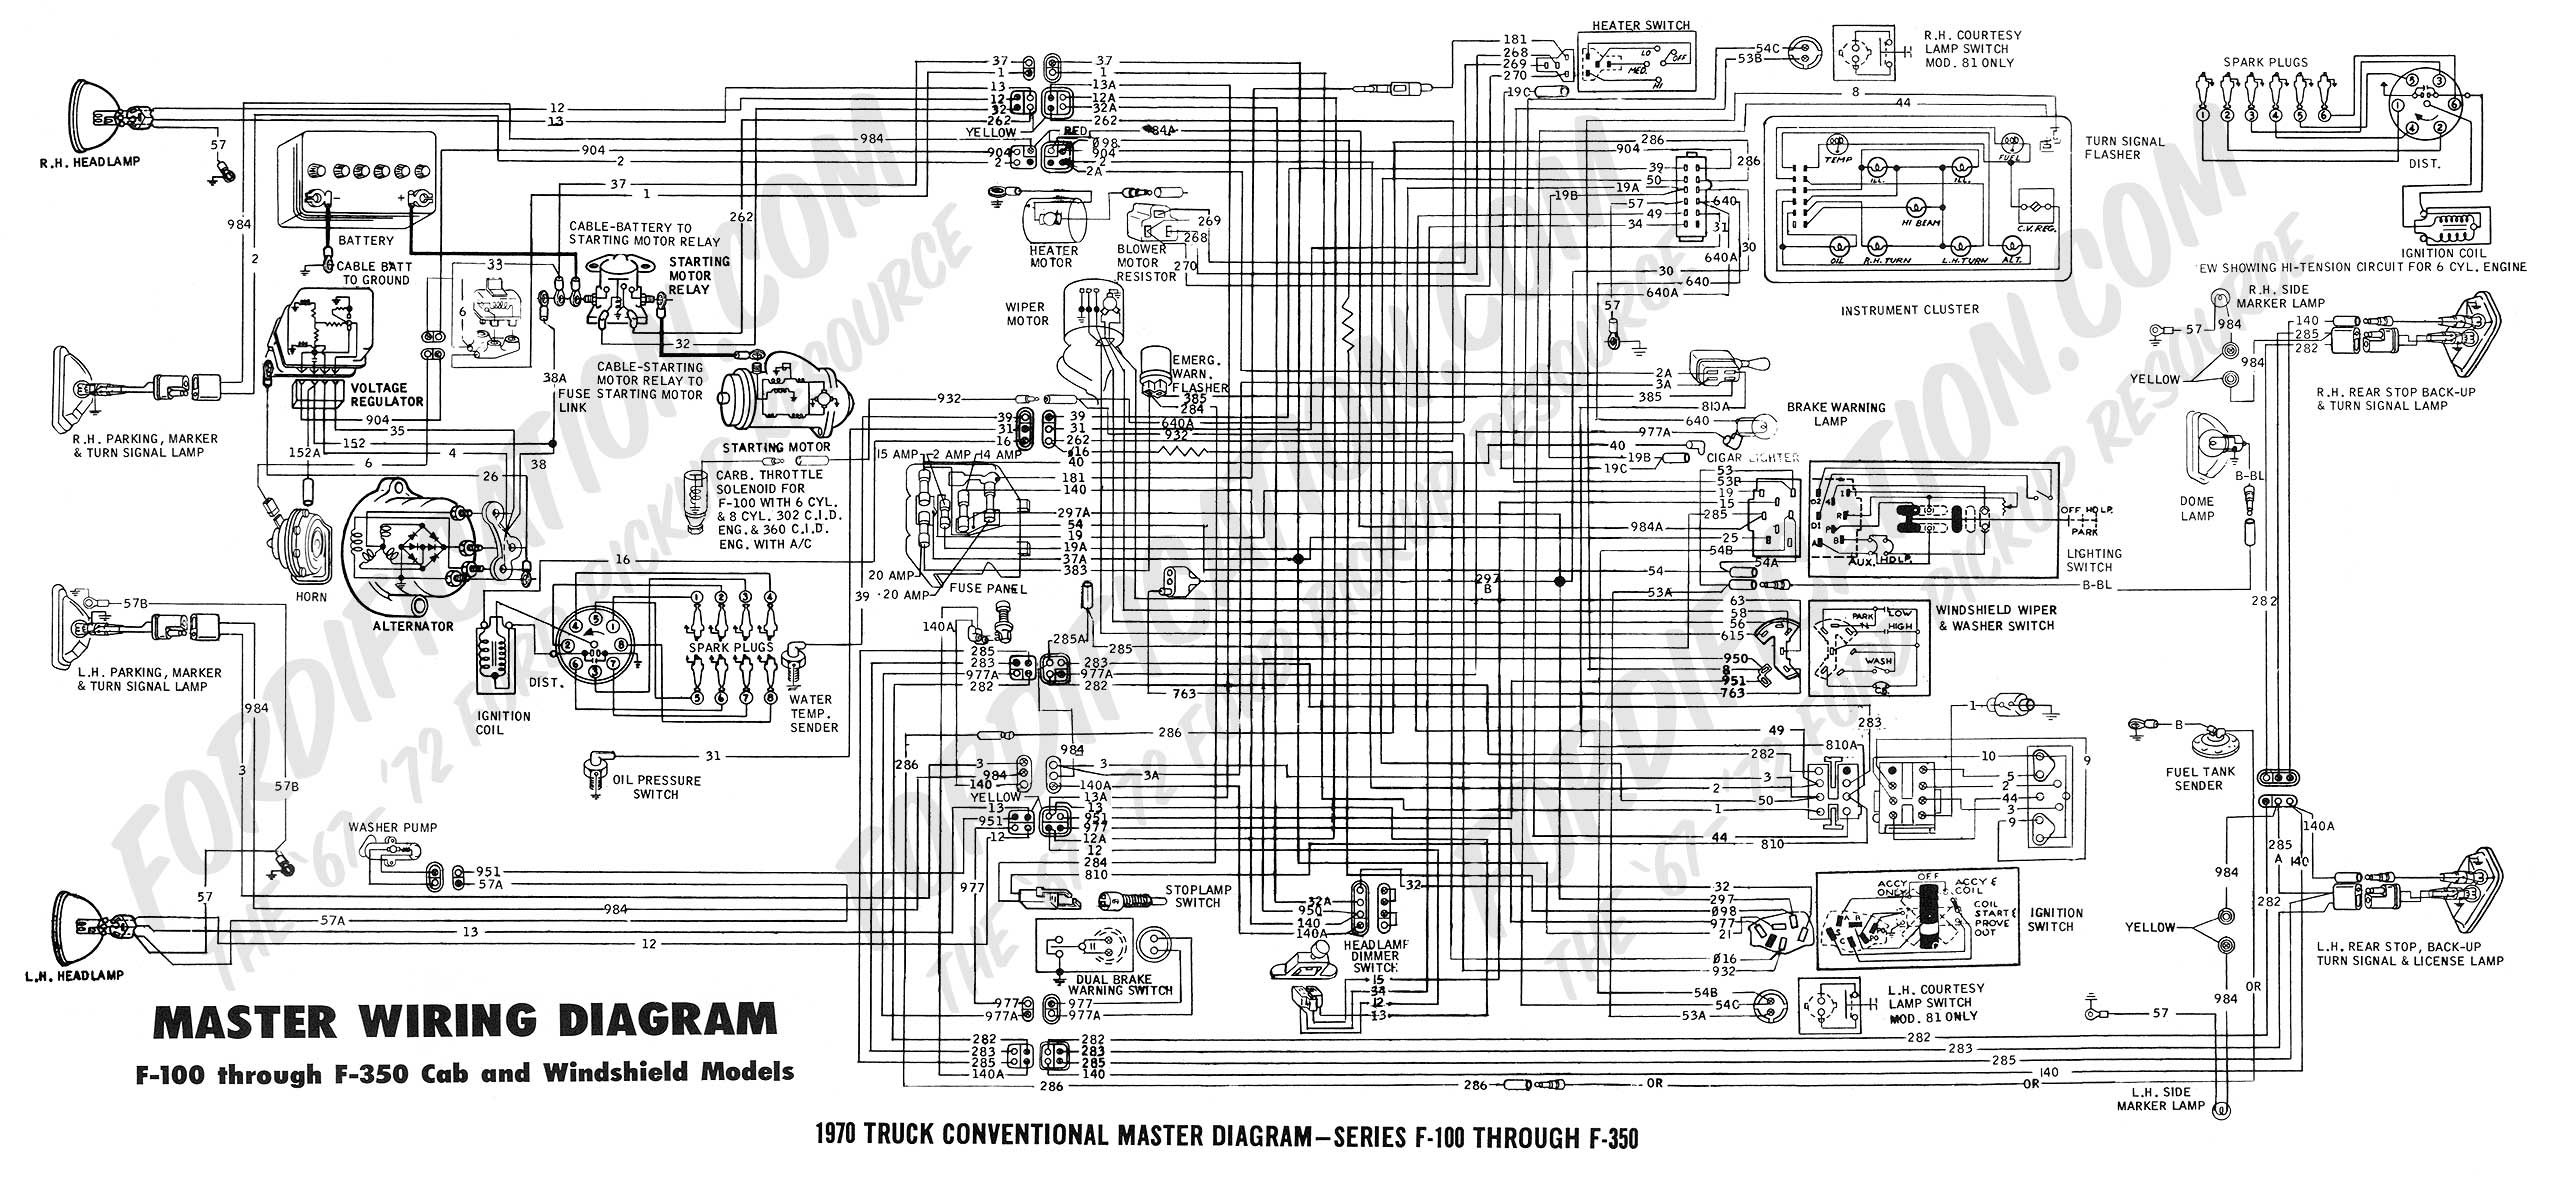 Astonishing Wiring Diagram For 1972 Ford Mustang Diagram Data Schema Wiring Digital Resources Anistprontobusorg